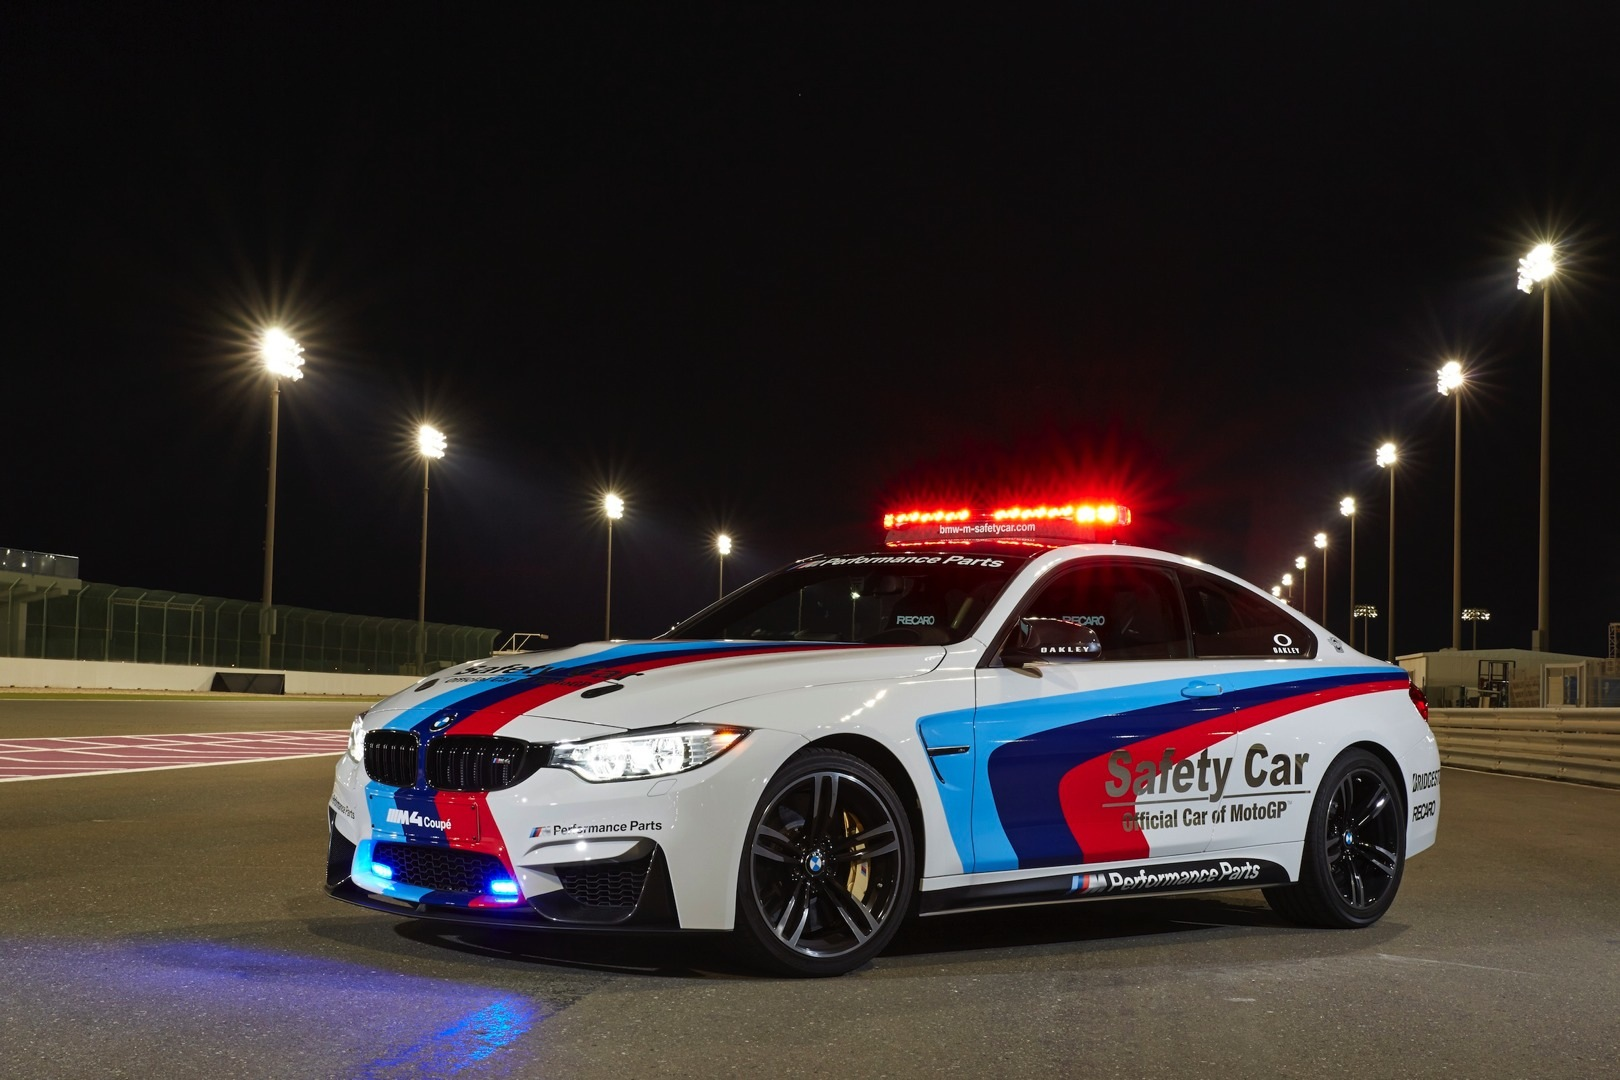 bmw m4 safety car debuts in motogp at qatar grand prix autoevolution. Black Bedroom Furniture Sets. Home Design Ideas